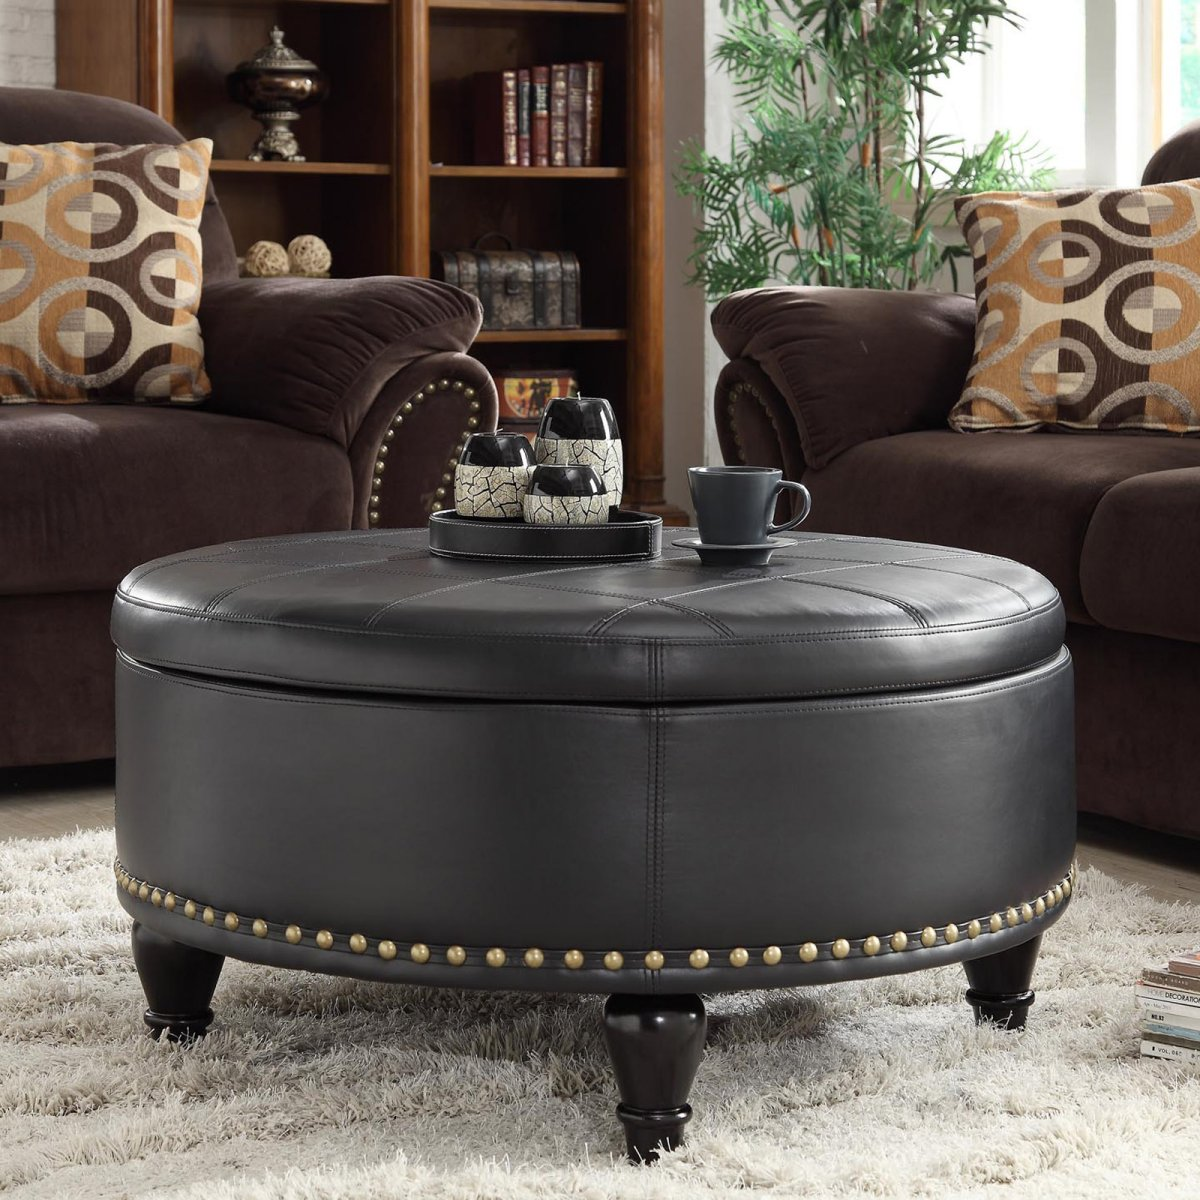 elegant-living-room-round-ottoman-coffee-table-ideas-round-fabric-coffee-table-fabric-covered-ottoman-coffee-table (Image 4 of 10)